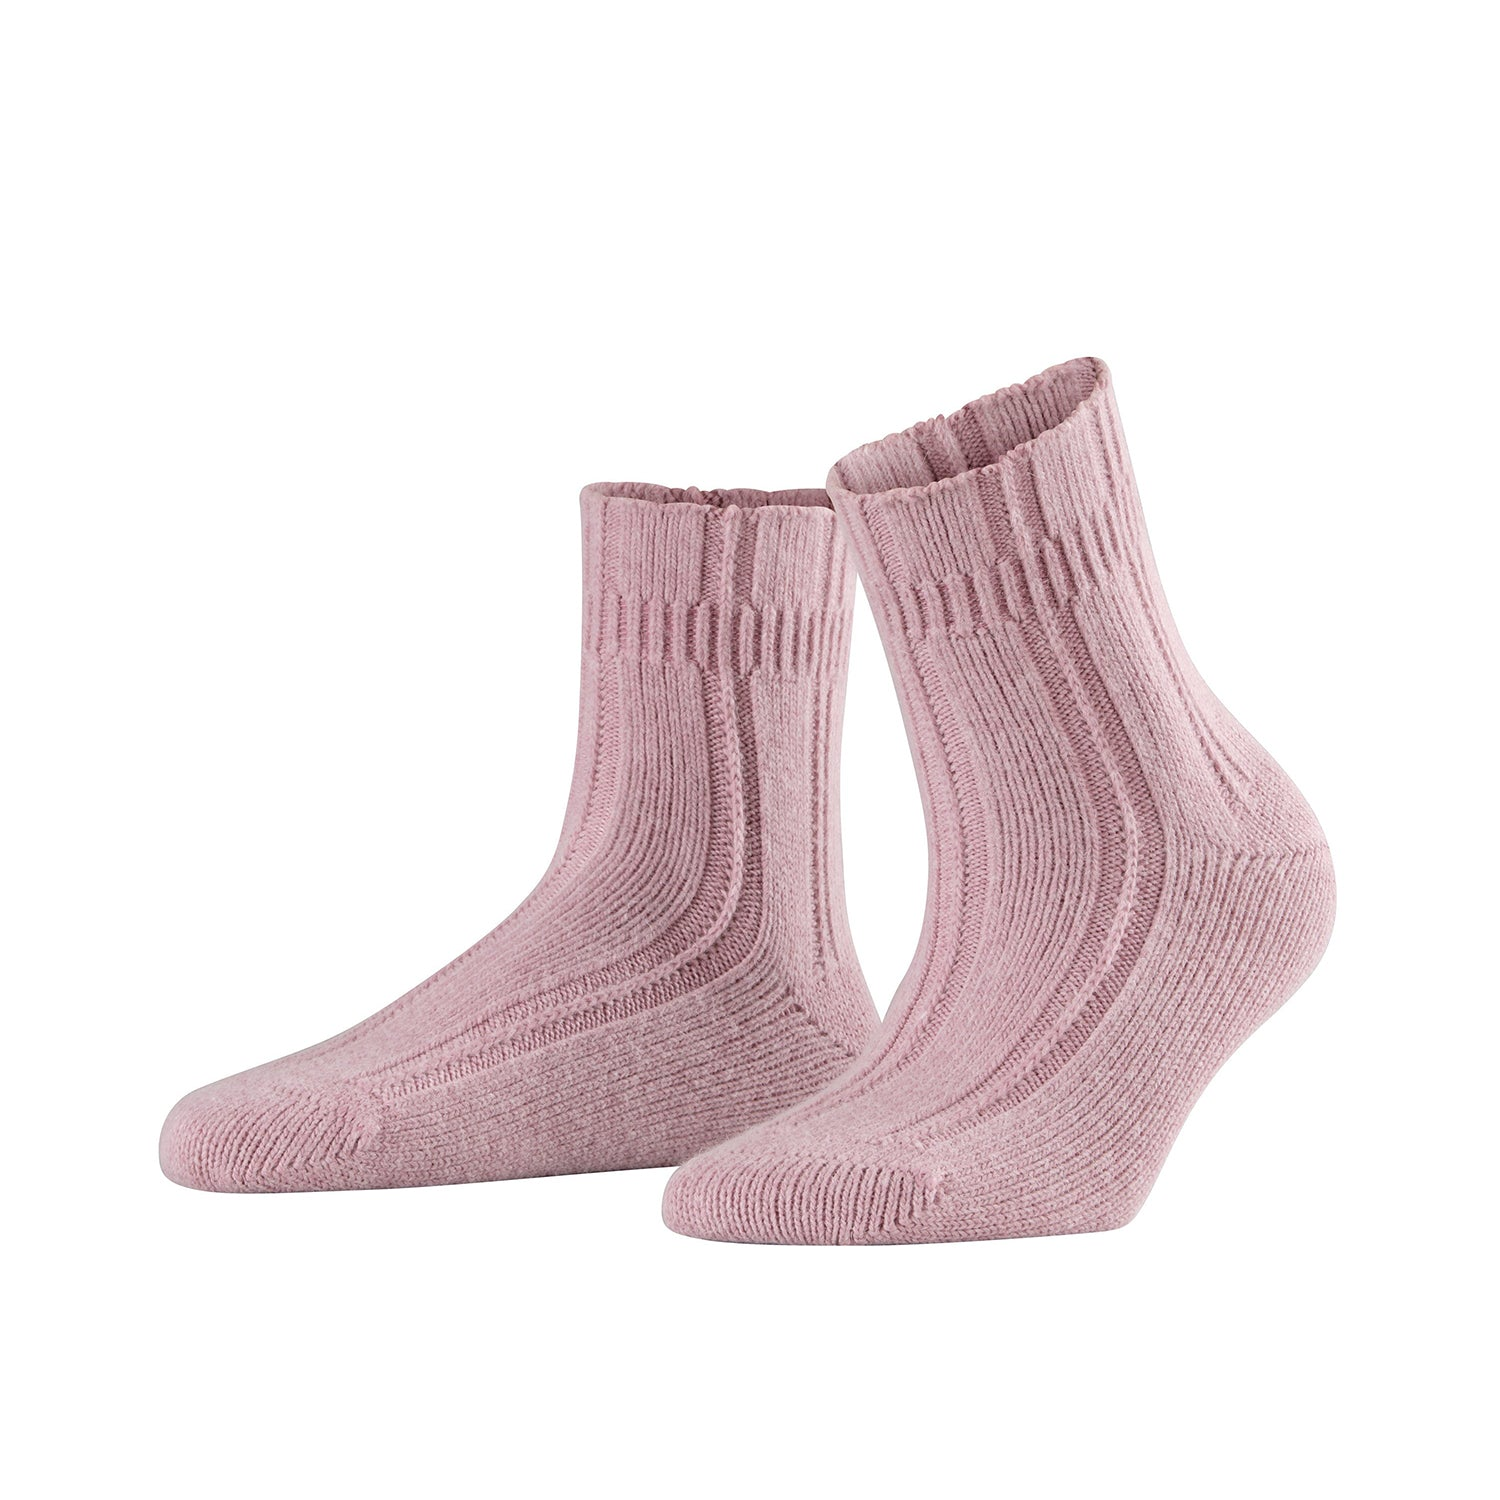 Falke Women's Bedsocks - Brick